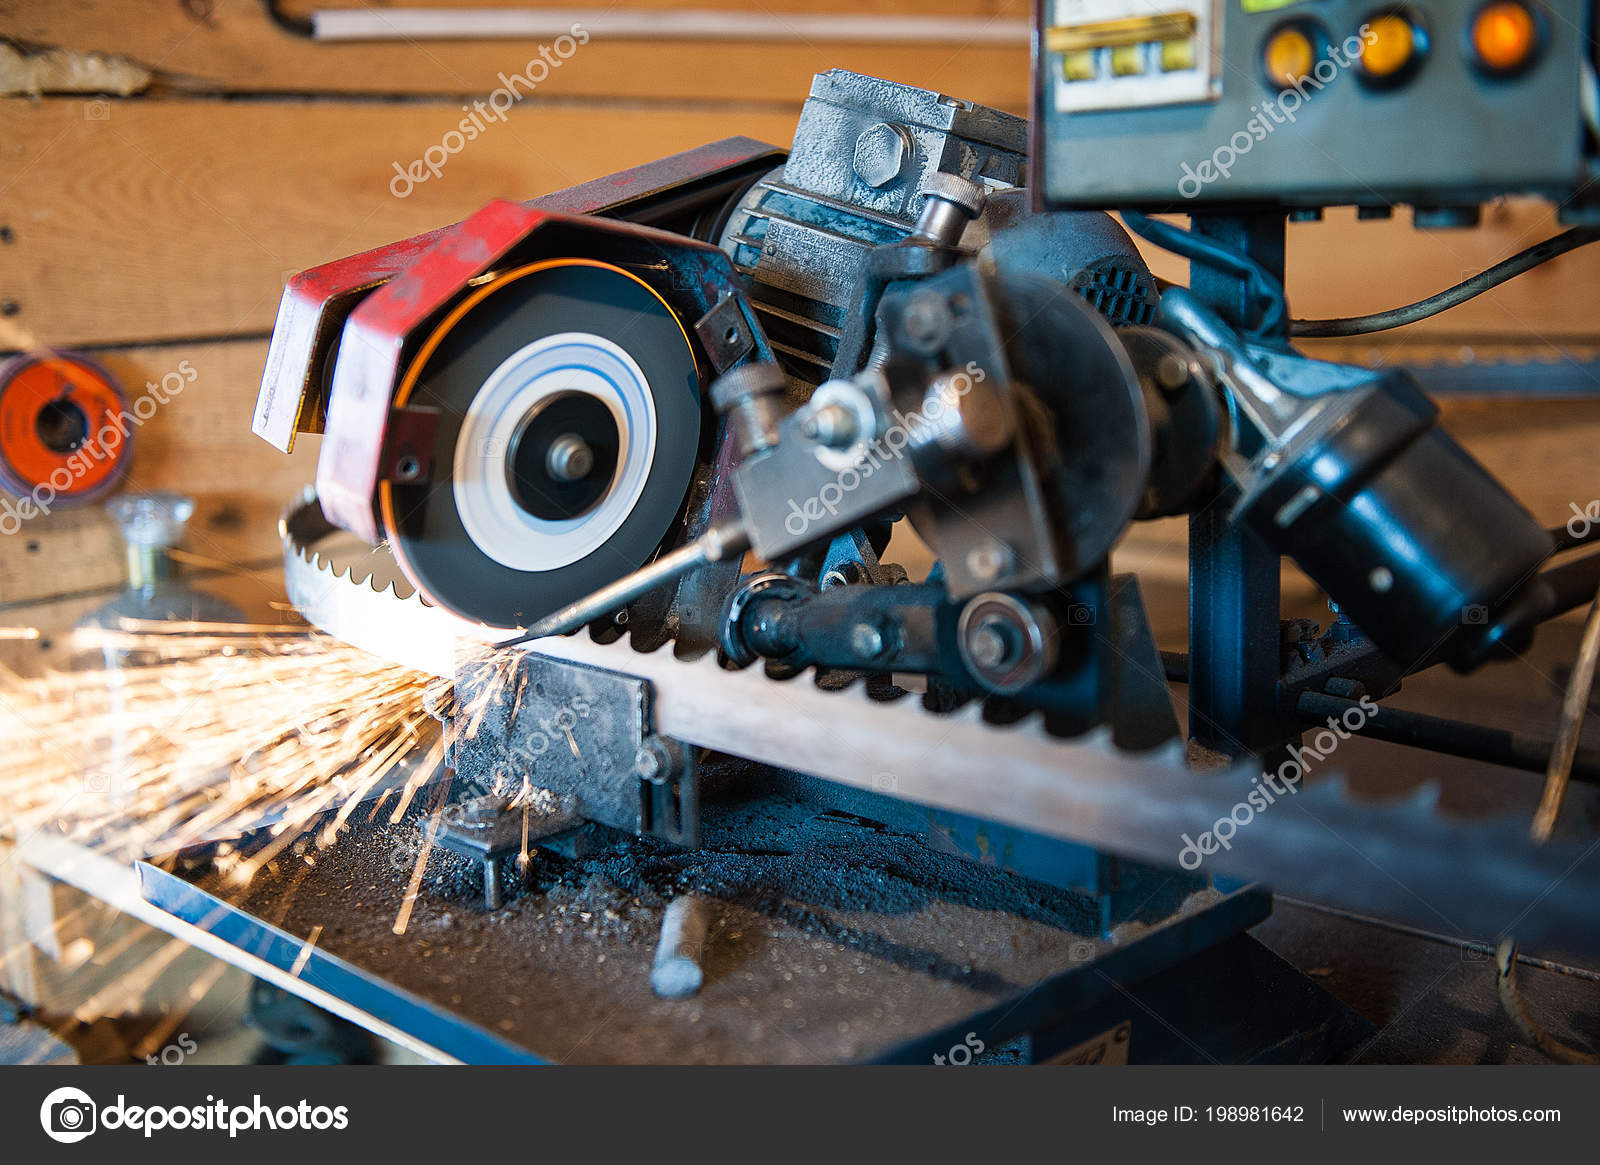 Sharpening Band Saw Blades Machine — Stock Photo